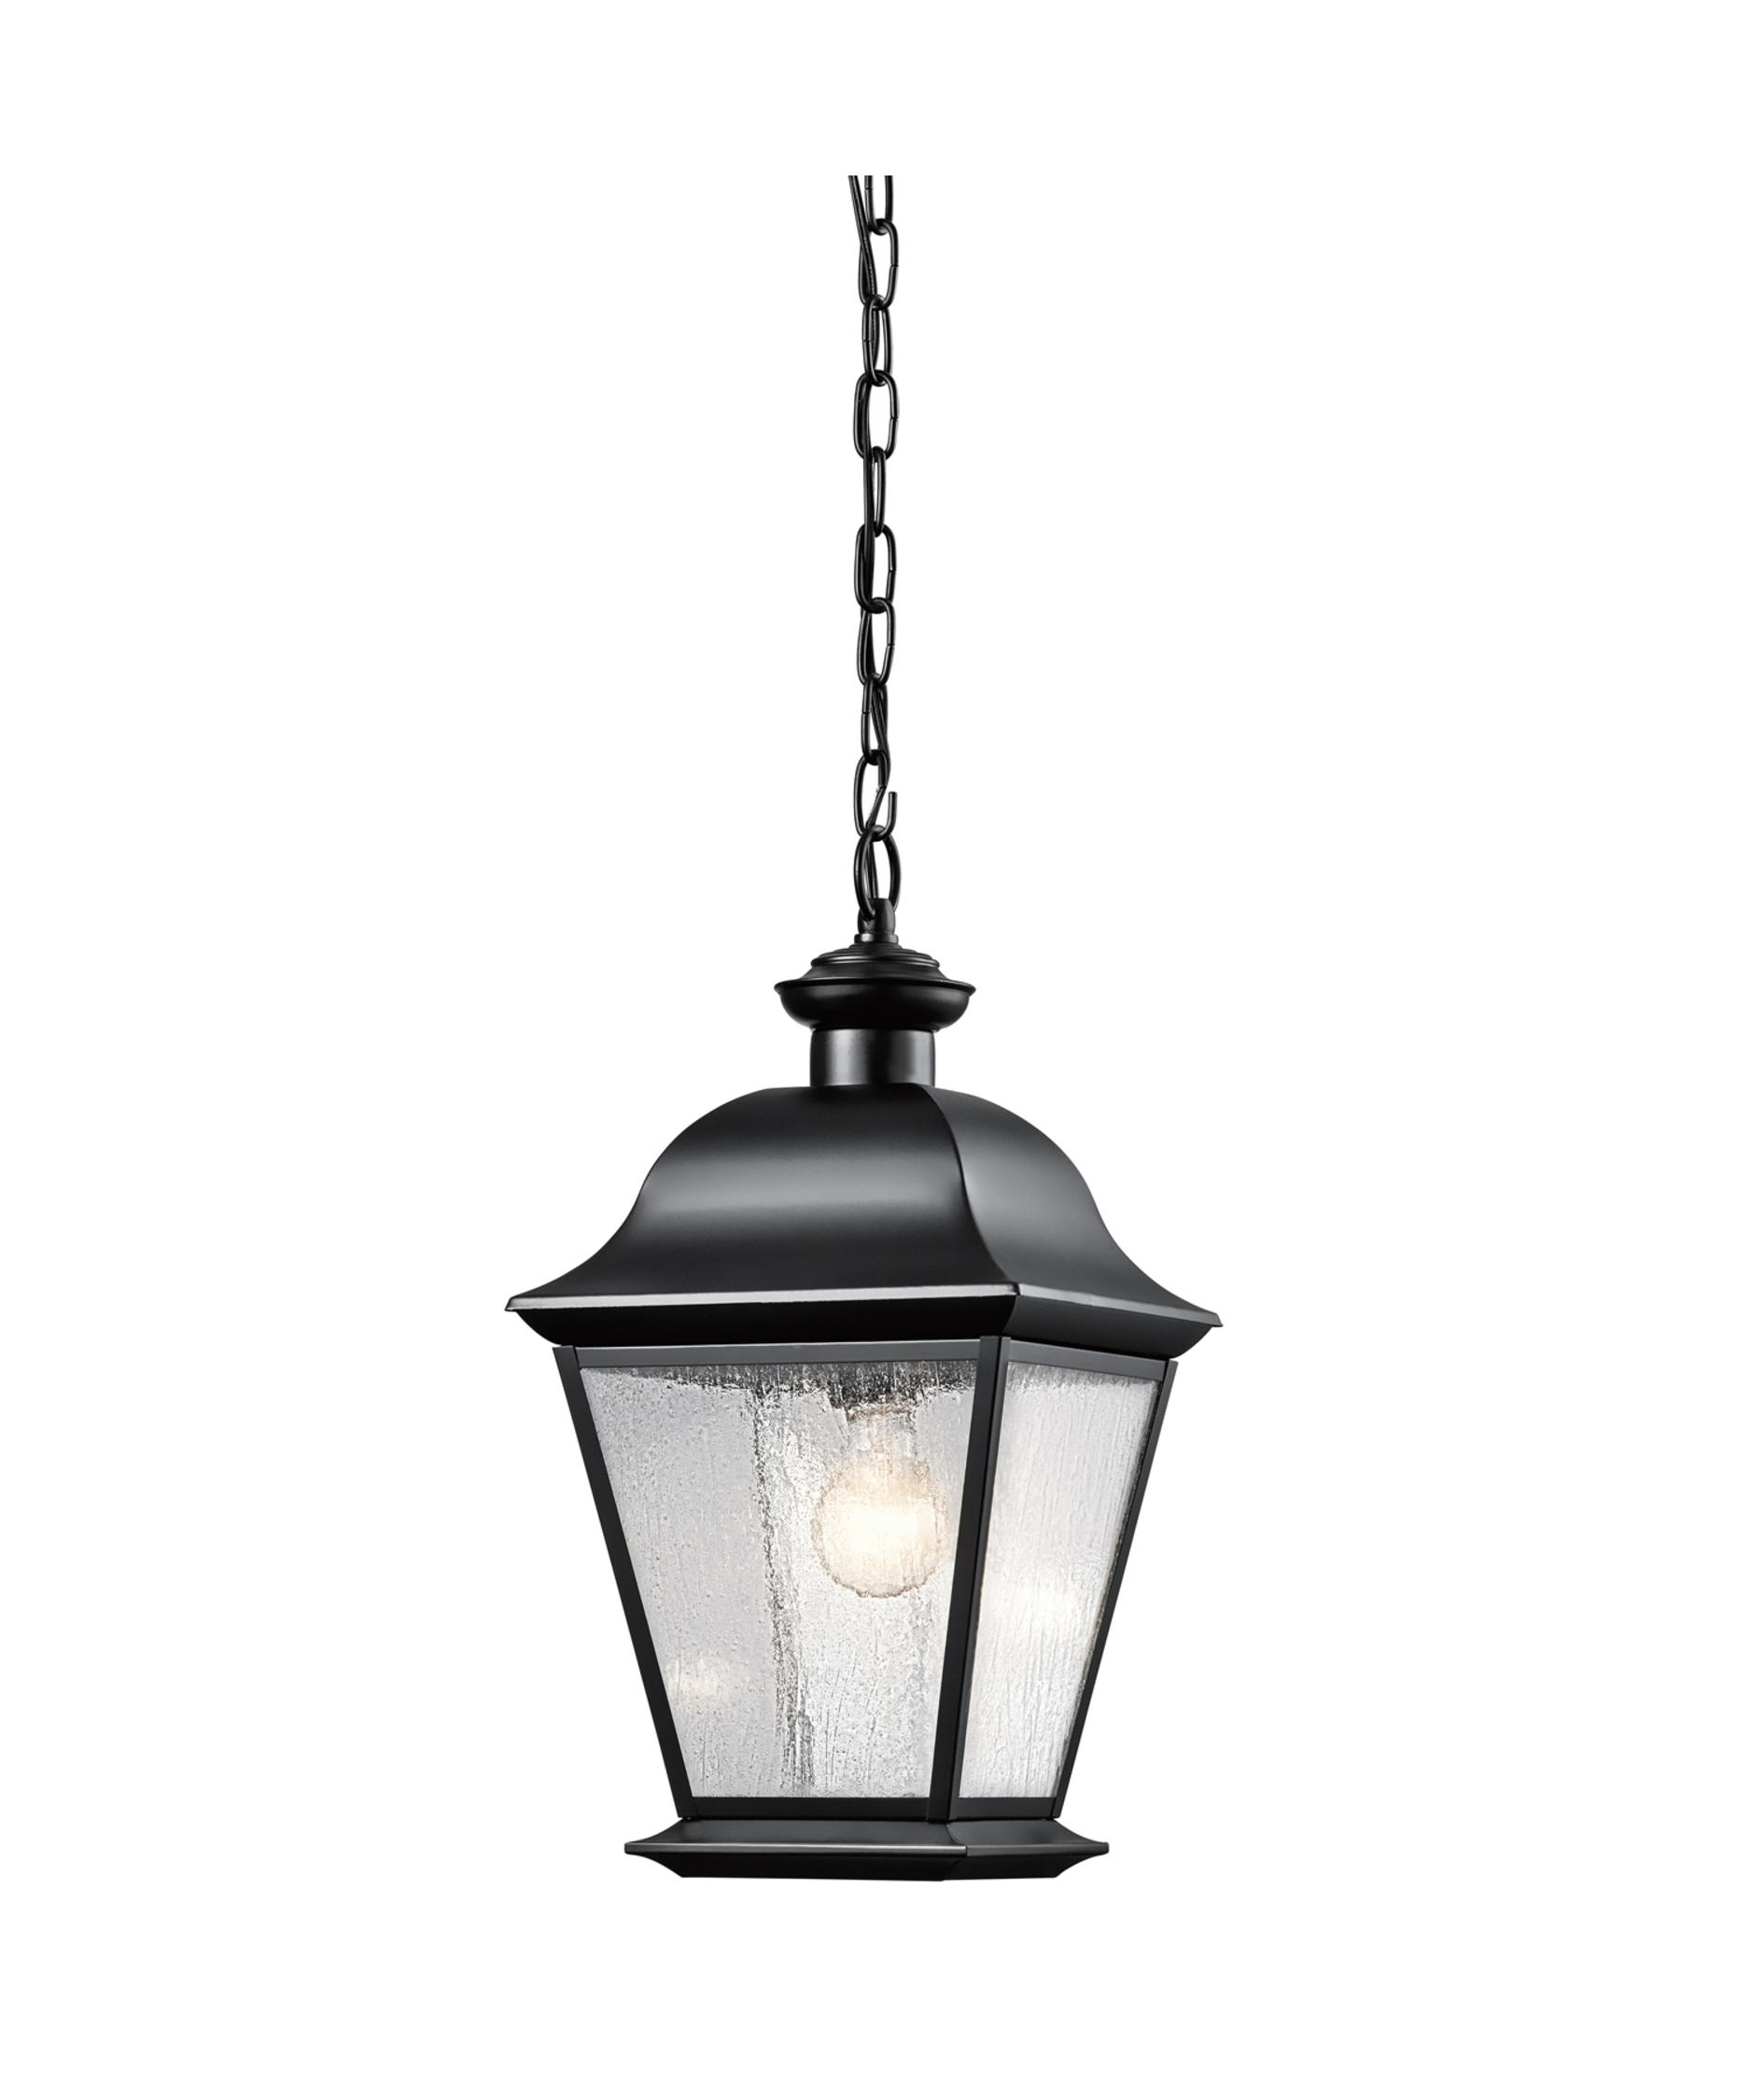 Best And Newest Kichler 9809 Mount Vernon 10 Inch Wide 1 Light Outdoor Hanging Intended For Outdoor Hanging Light In Black (View 10 of 20)